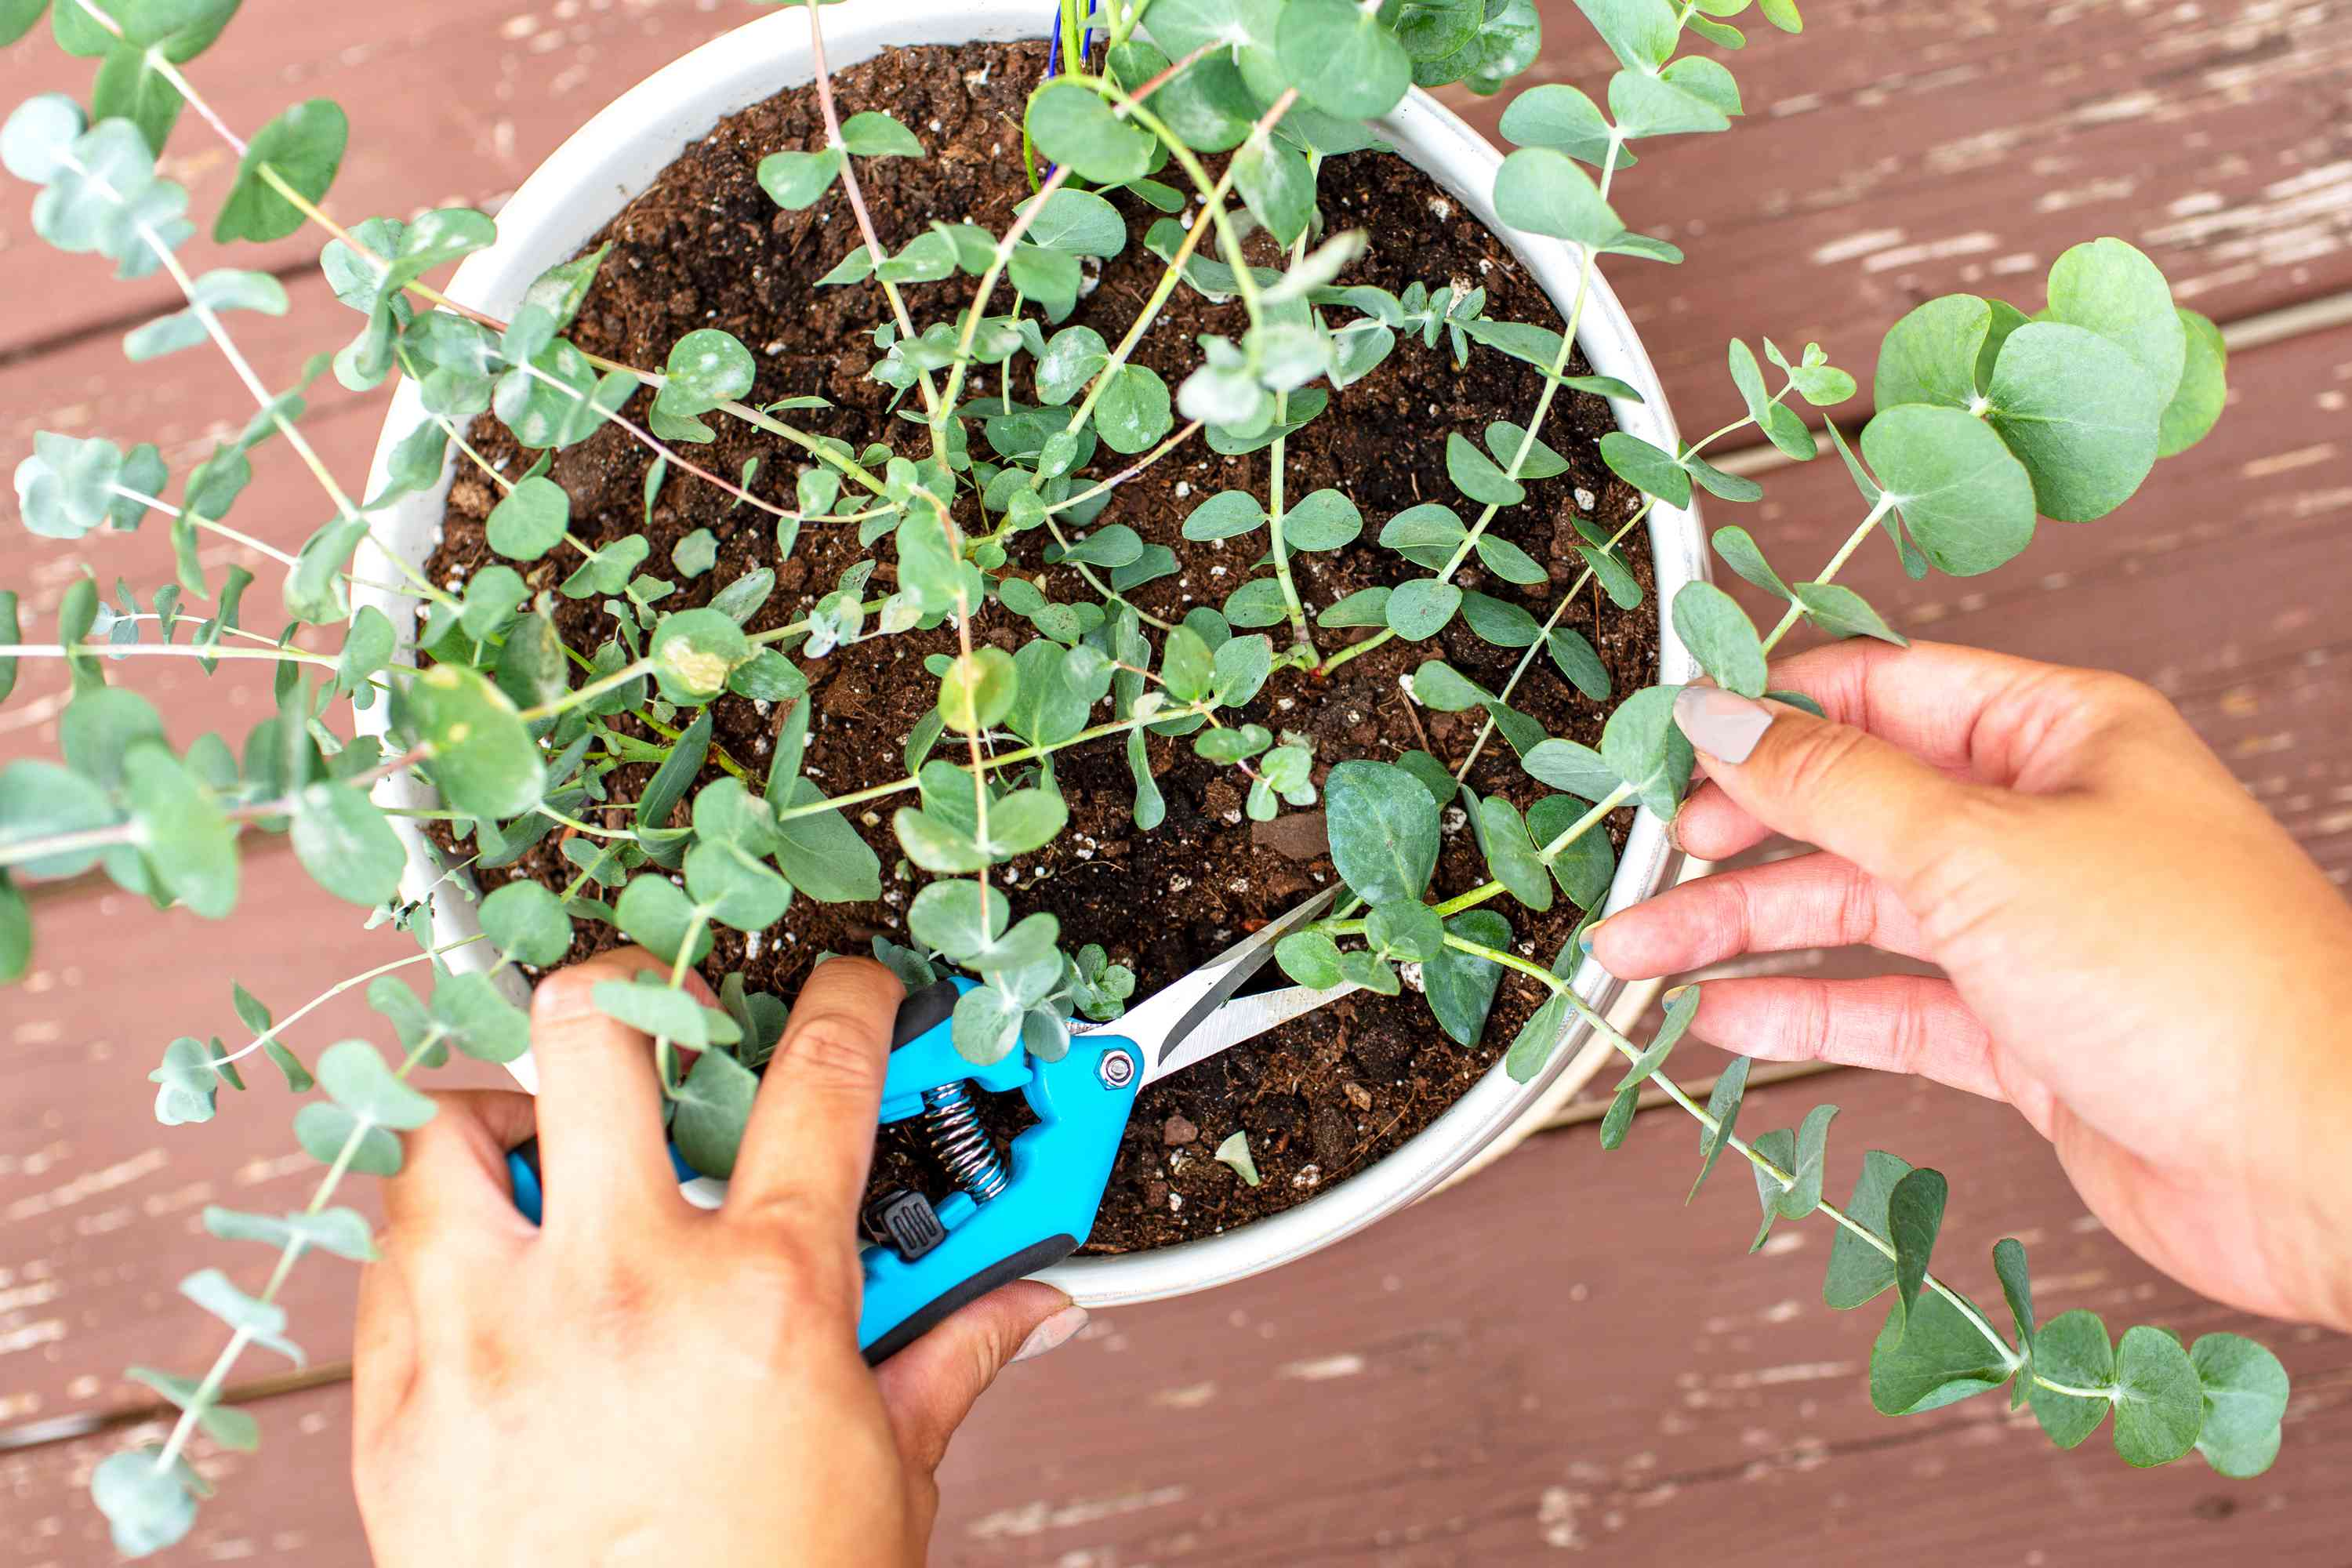 Blue eucalyptus plant in white pot being cut with blue hand-held sheers from overhead